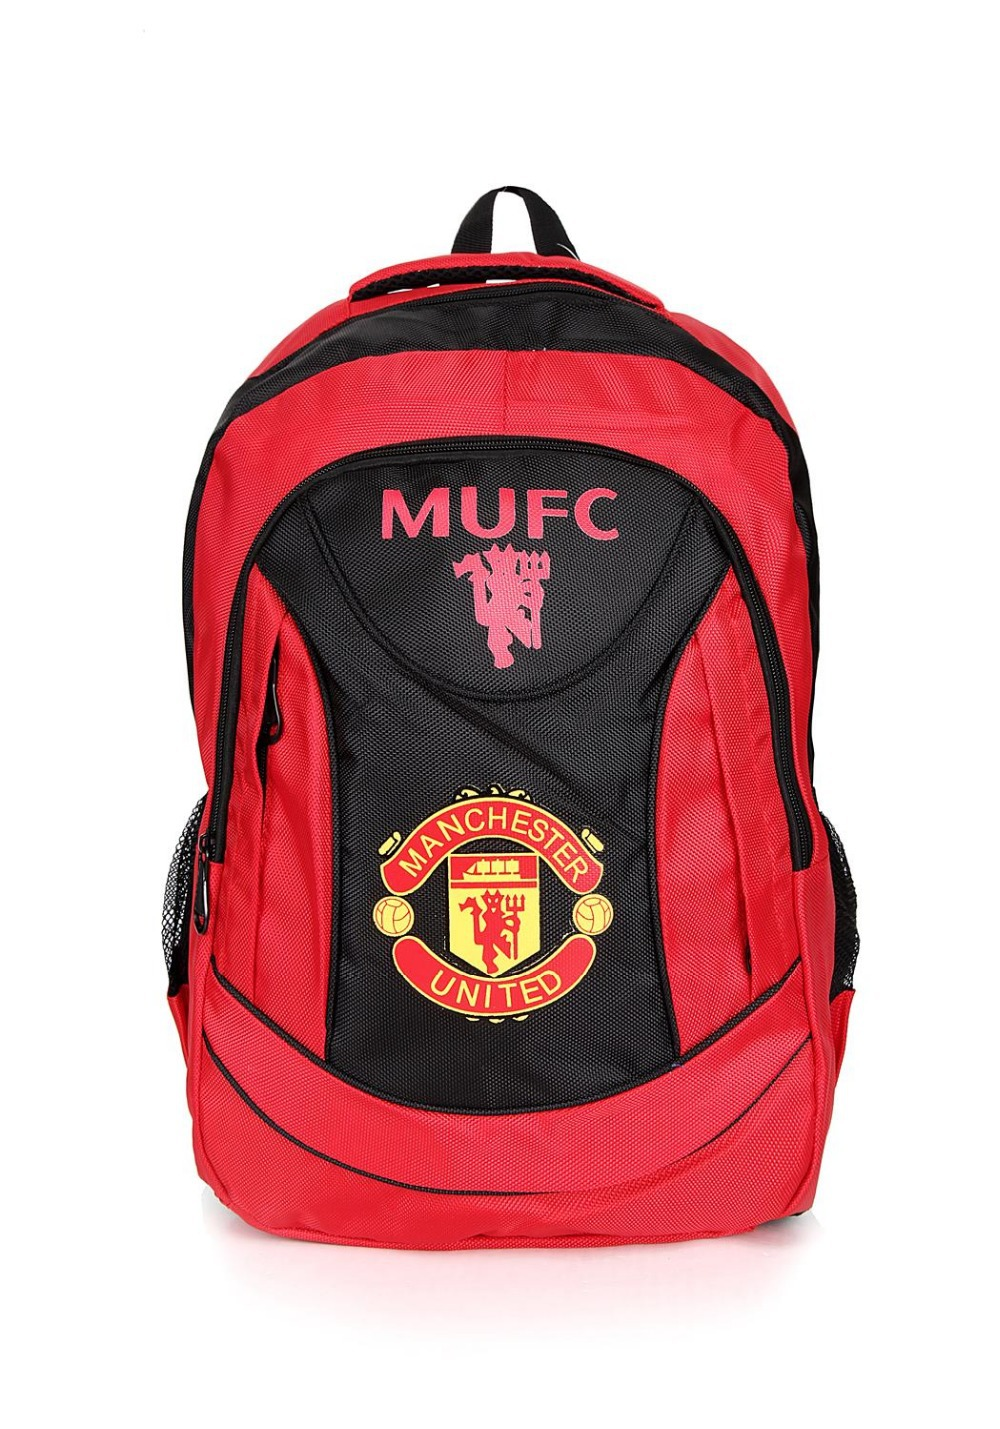 The Red Devils Football Club Ferguson, Busby, Charlton, Best, Eric Cantona, David Beckham, C Luo Bag football backpack Backpac(China (Mainland))